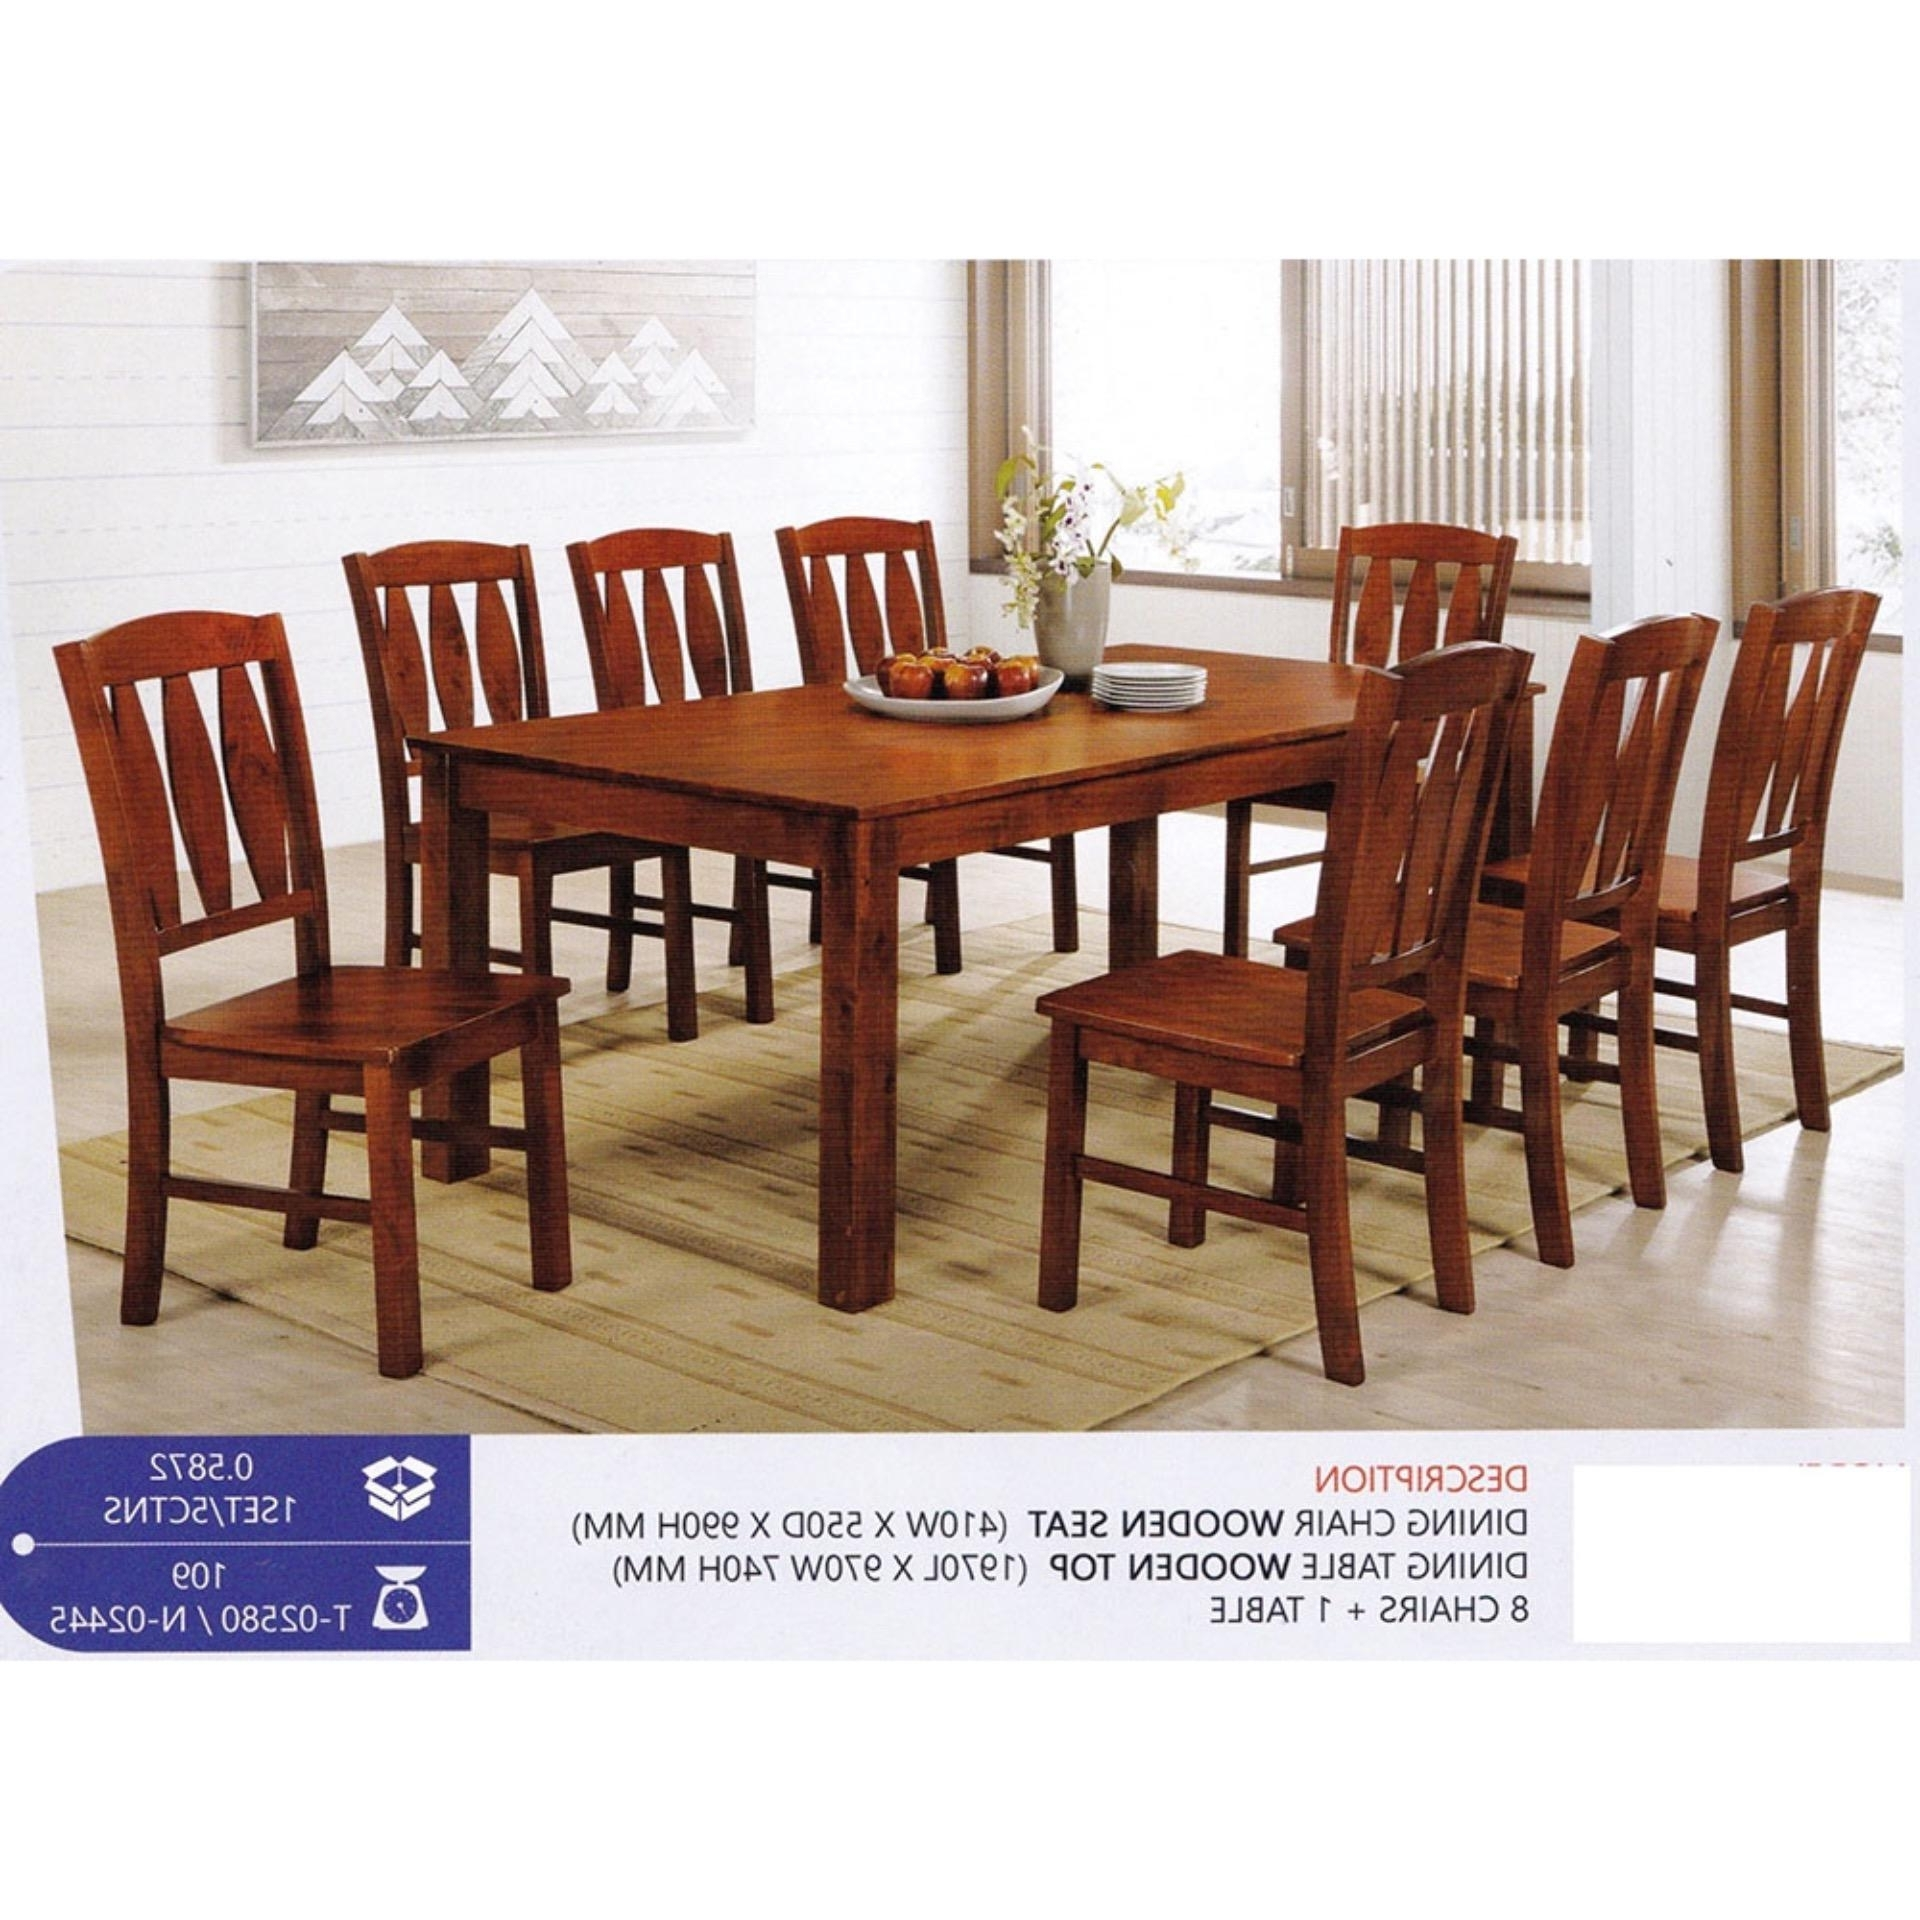 Well Known Fully Solid Wood 1+8 Dining Table Ch (End 5/2/2021 12:00 Am) Intended For Colourful Dining Tables And Chairs (View 21 of 25)